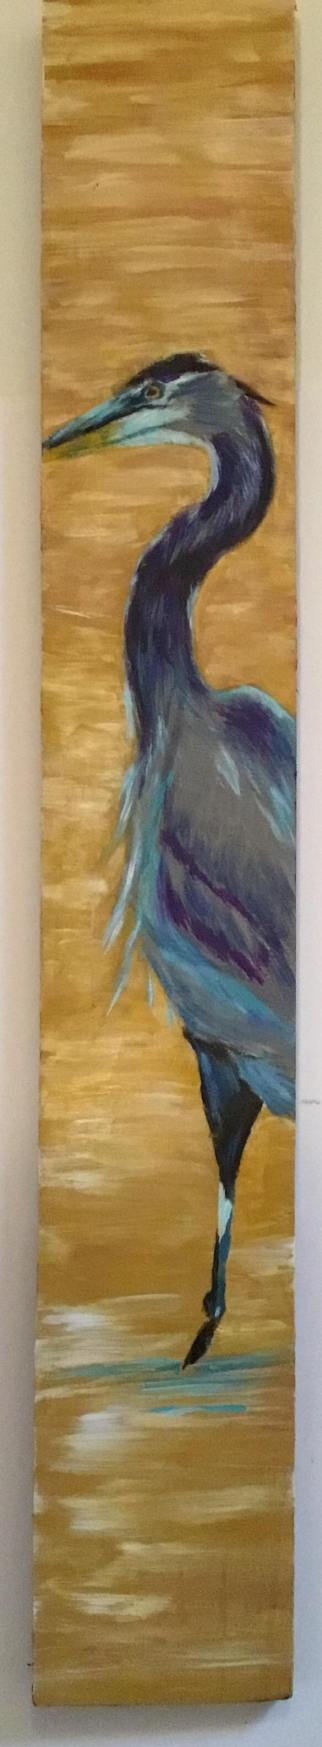 "Juliet Berry ""Blue Herron"" Acrylics on Wood Board"